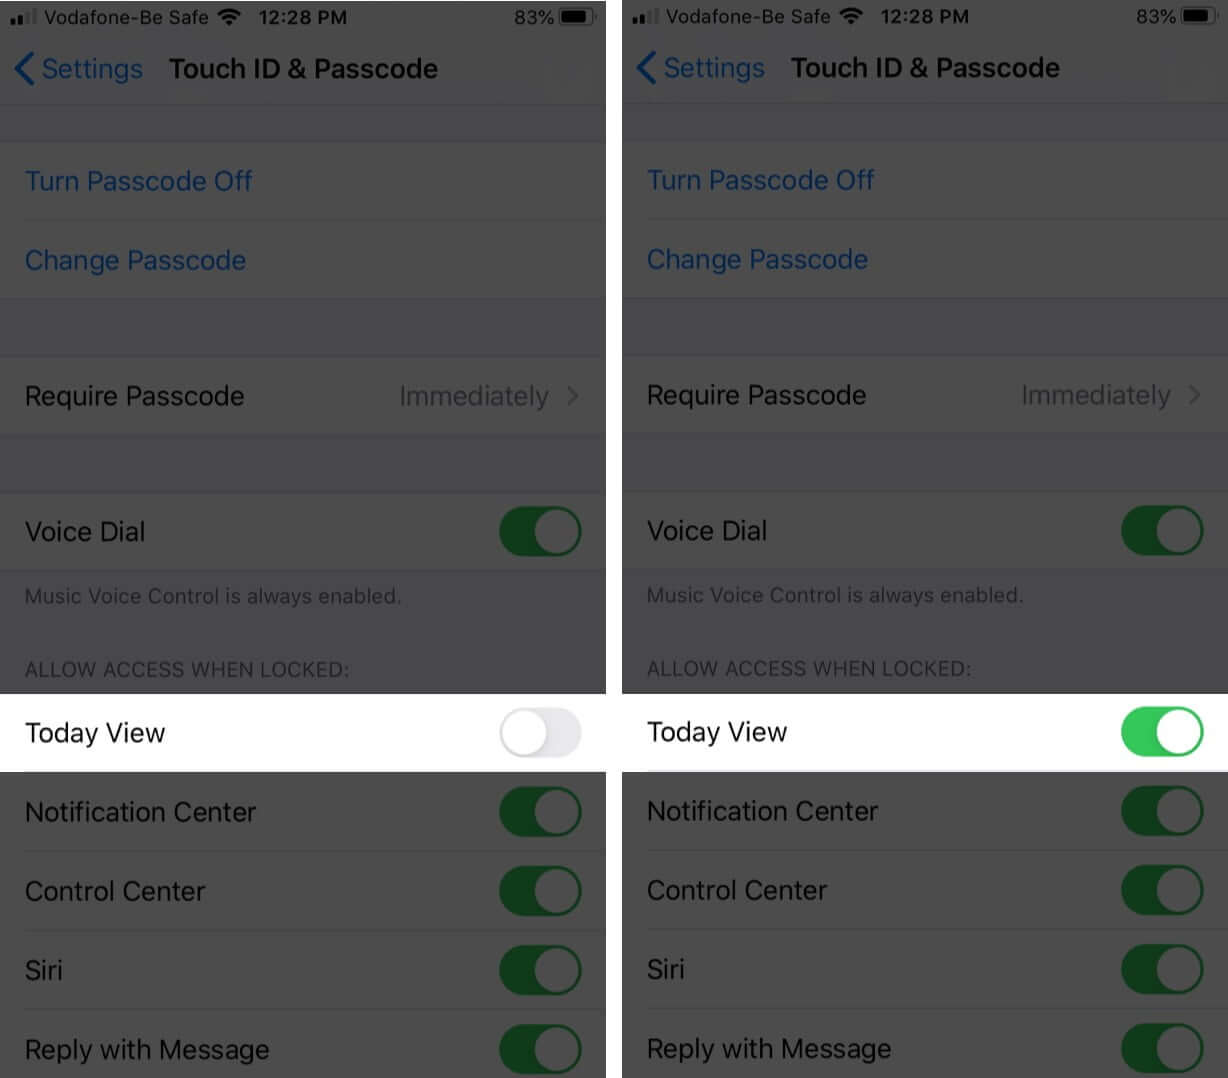 enable today view in touch id and passcode on iphone